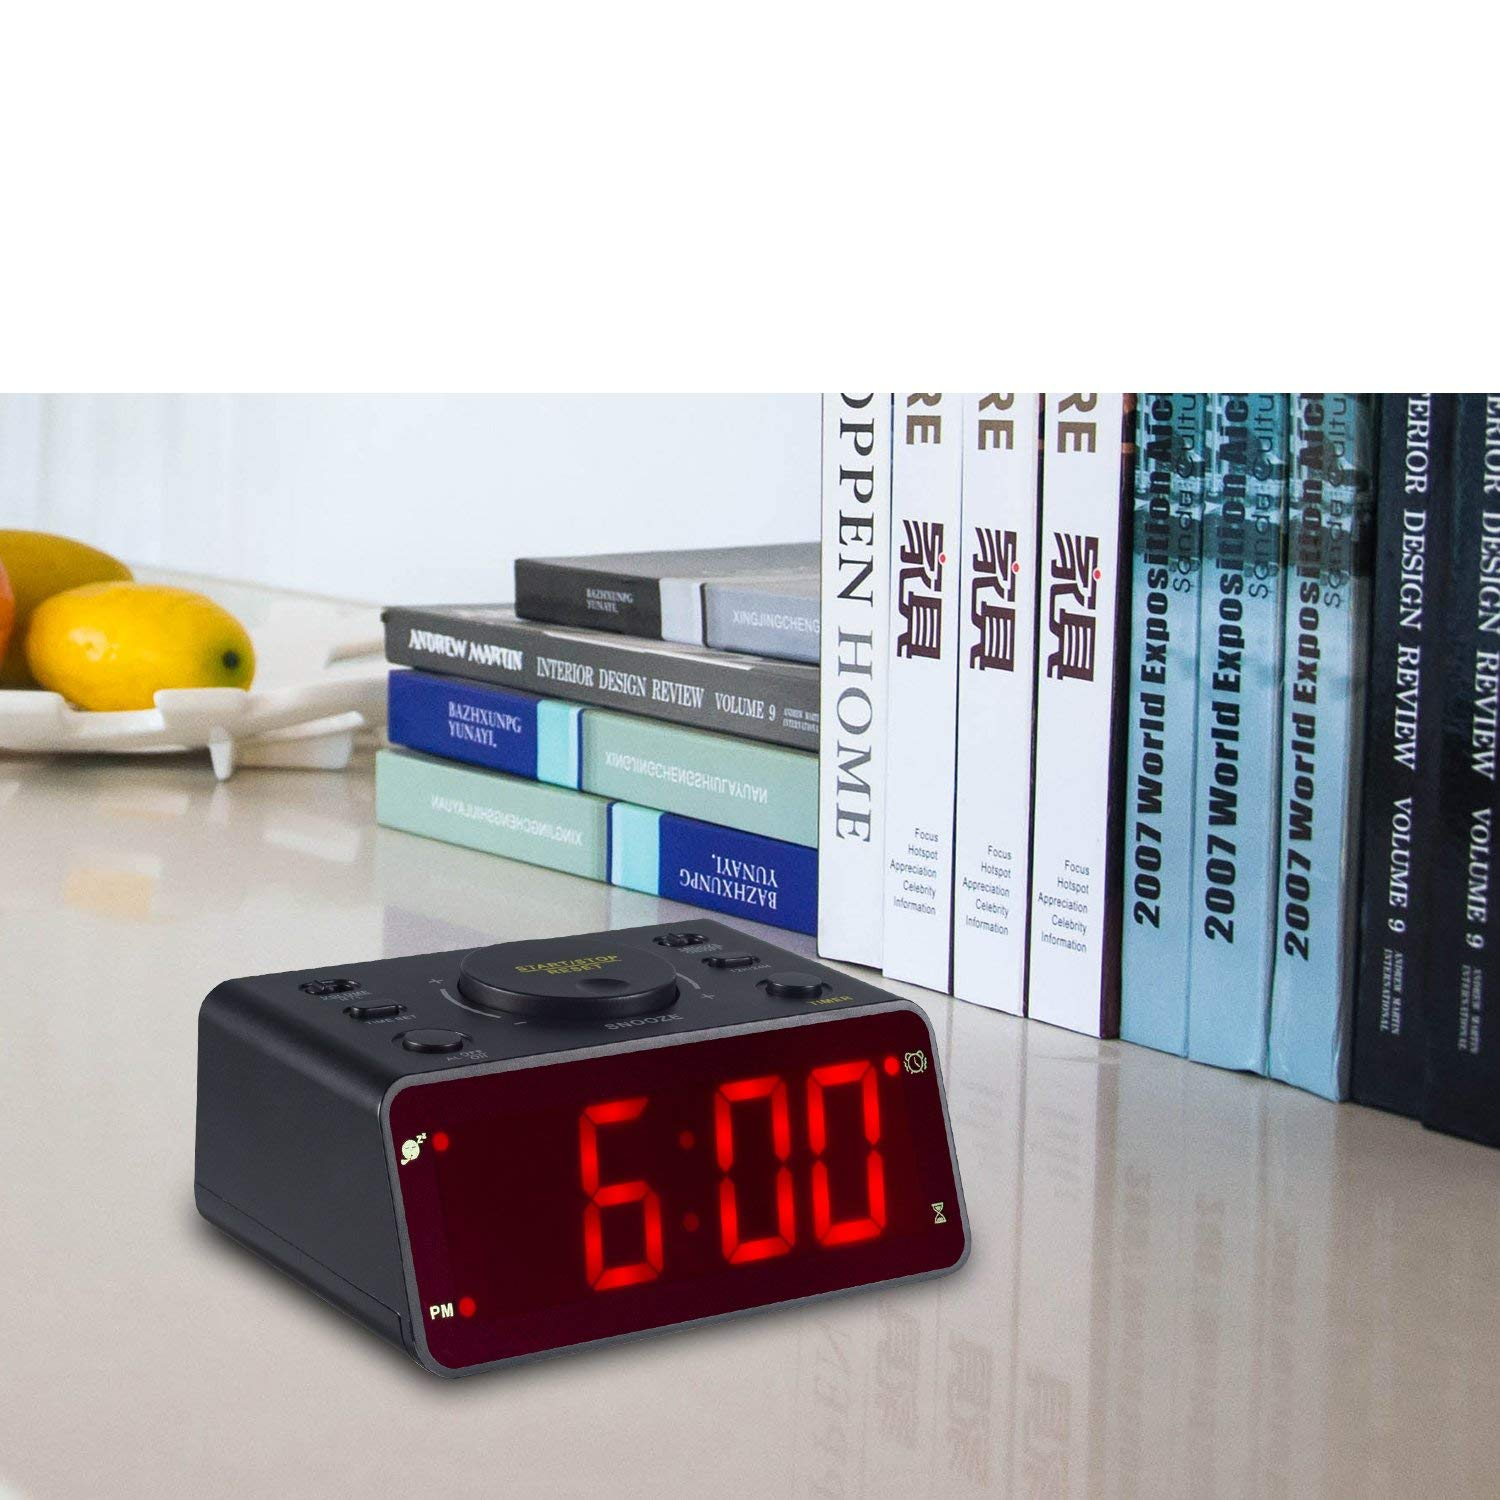 Solutions One 1 Second Time Delay For Digital Clock Using 555 Timer